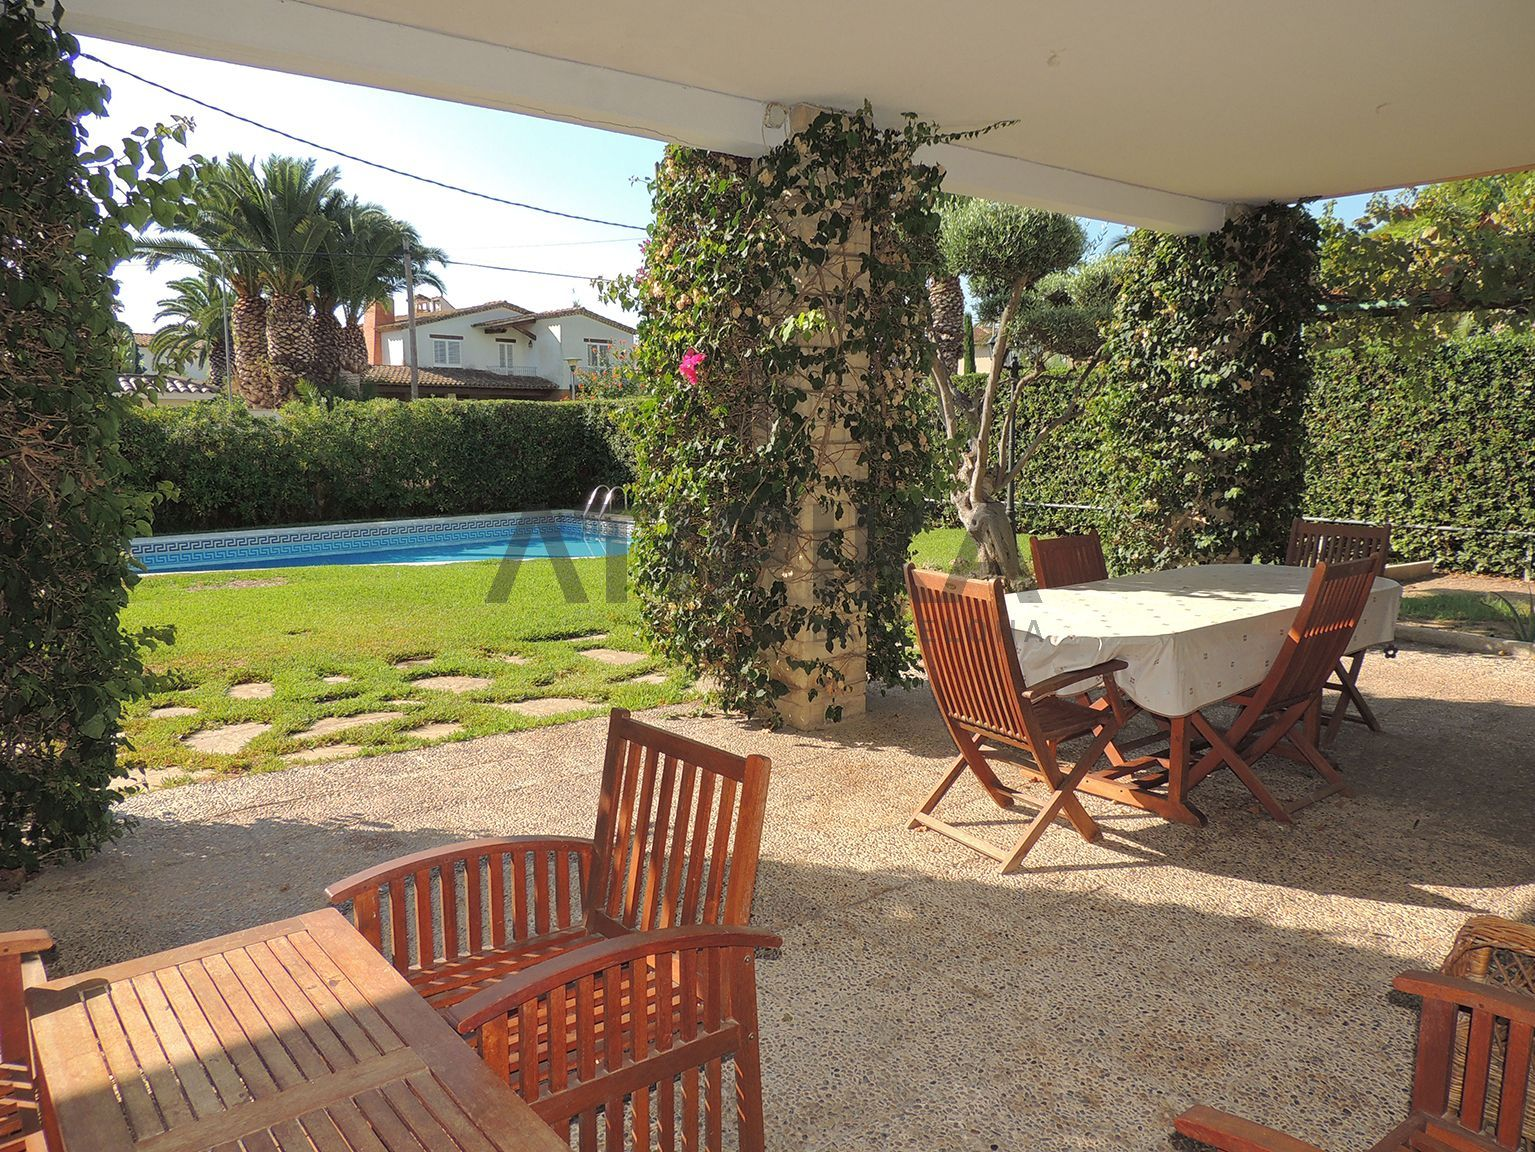 REF. 10355T Detached house with for #rent with private swimming pool, in one of the best areas of Sitges. Laid out in 2 floors, on a 1233sq m plot of land. Located in #Terramar  #Sitges #ElGarraf #Barcelona #SeaAtipikaBarcelona #AtipikaBarcelona #AtipikaBcn #RealEstate www.atipika.com